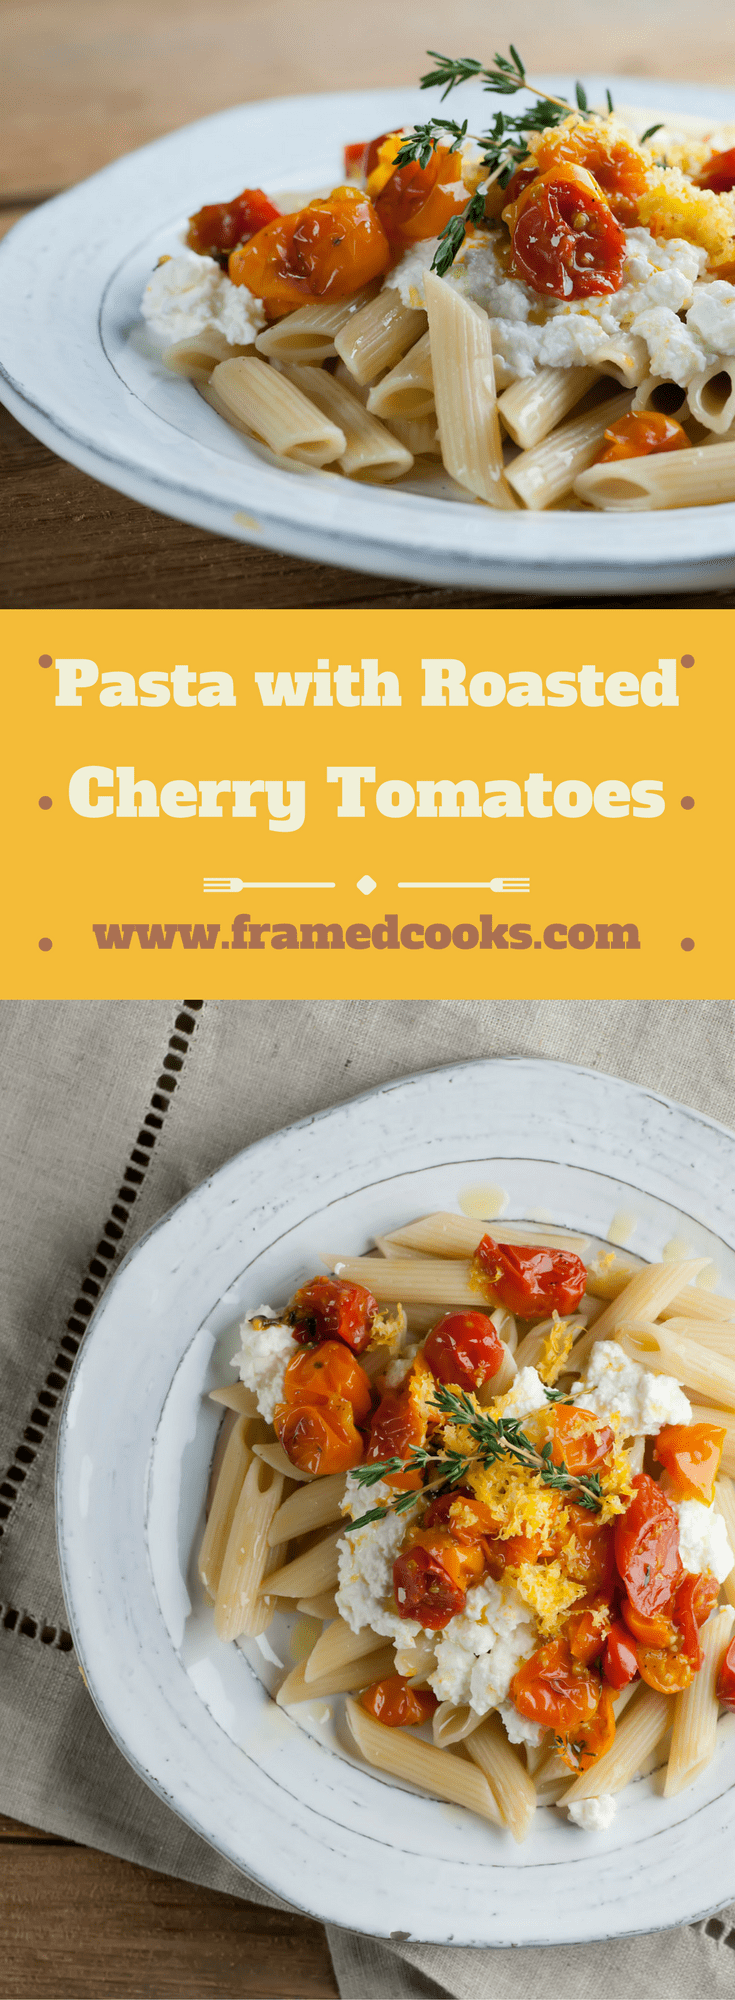 This easy recipe for penne with roasted tomatoes and fresh ricotta gives a whole new meaning to pasta with tomato sauce! Simple and delicious.